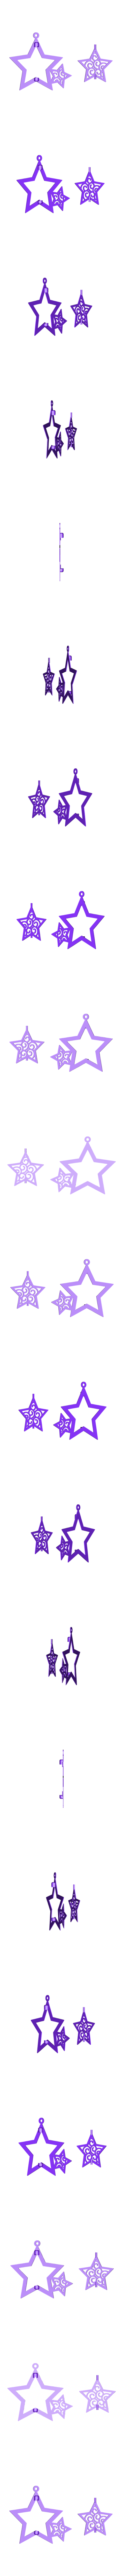 star_a.stl Download free STL file Christmas ornament • 3D printing model, Toolmoon